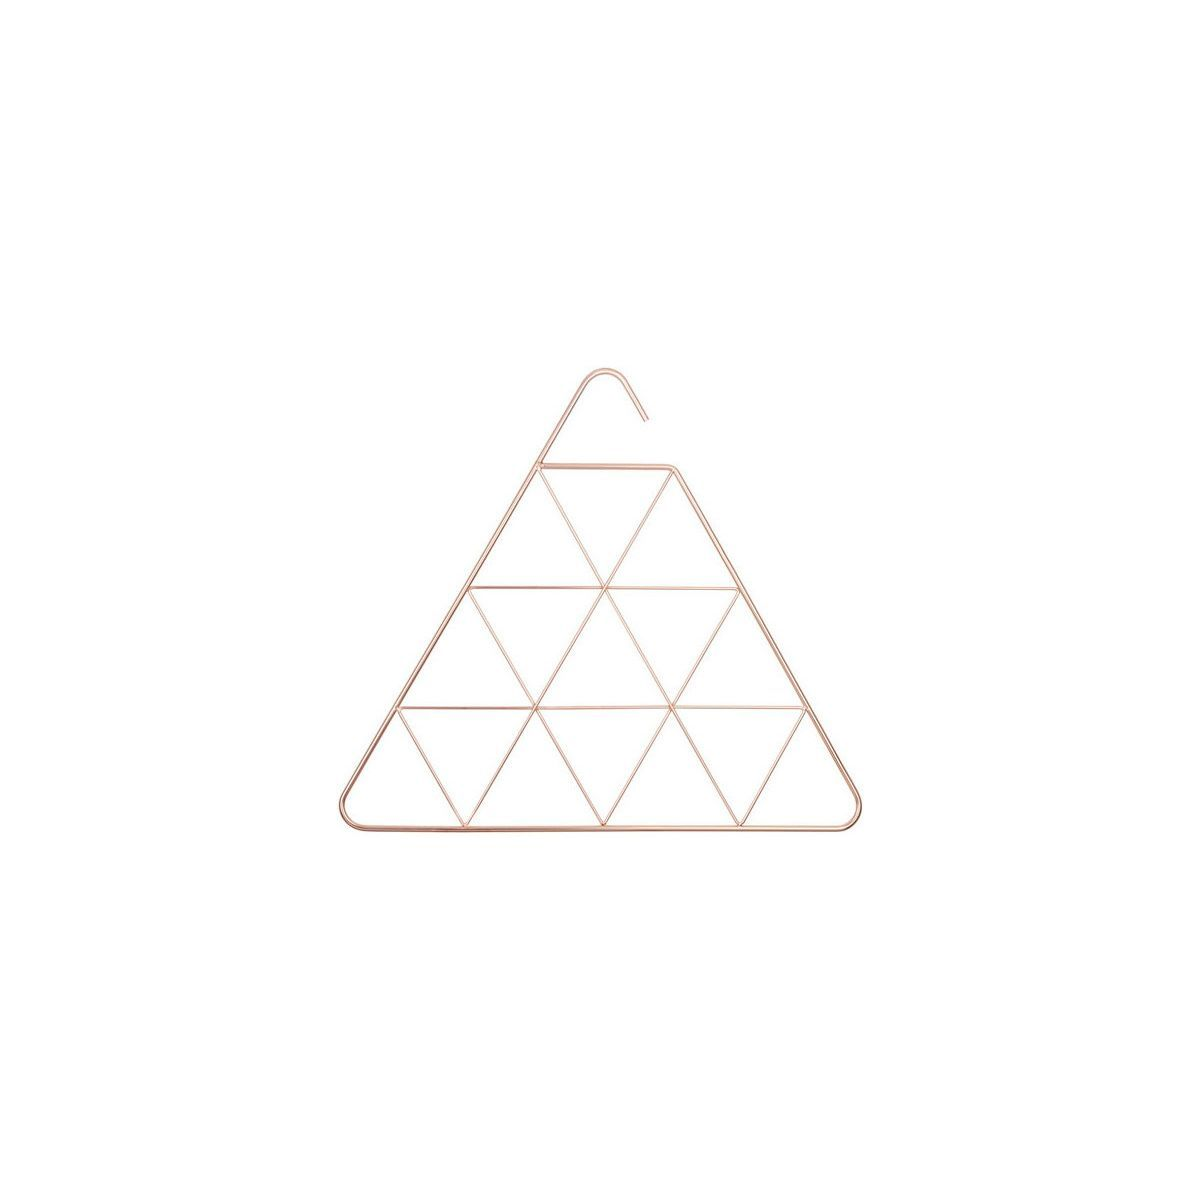 Triangle-shaped scarf organizer with copper finsih photo